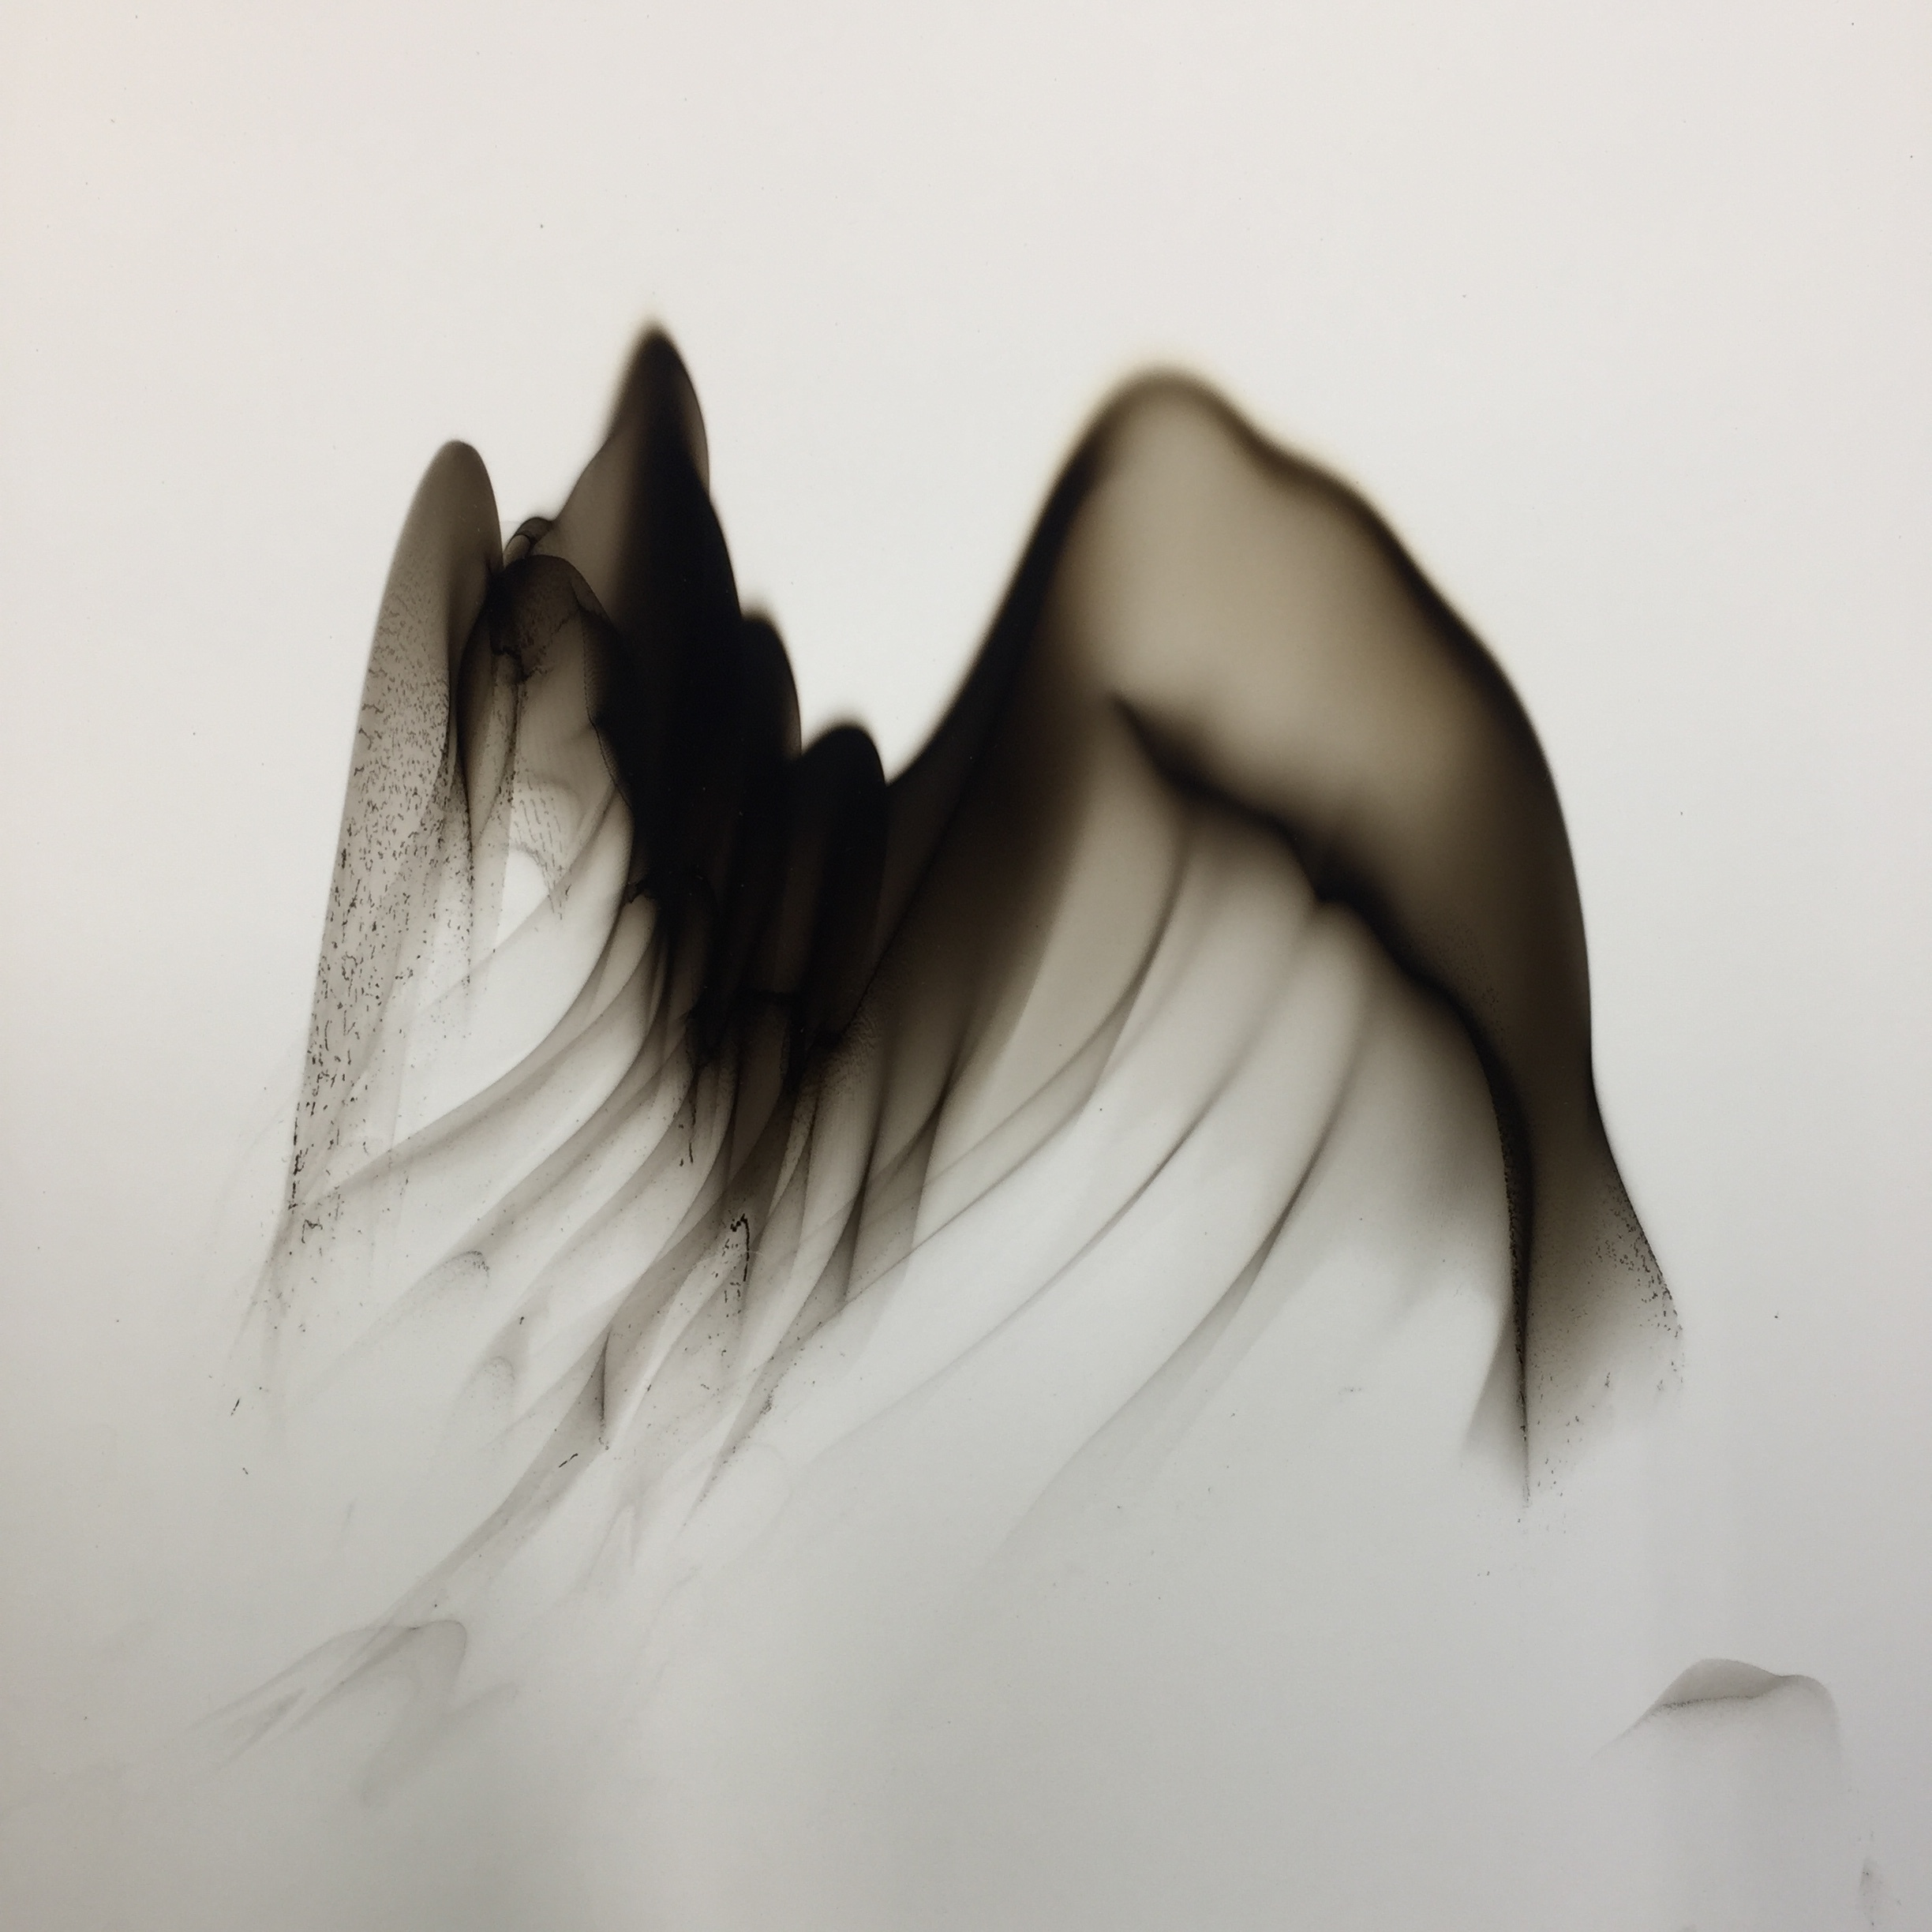 Dennis Lee Mitchell  , Landscape 68, 2016, Smoke on paper, 19 x 19 inches